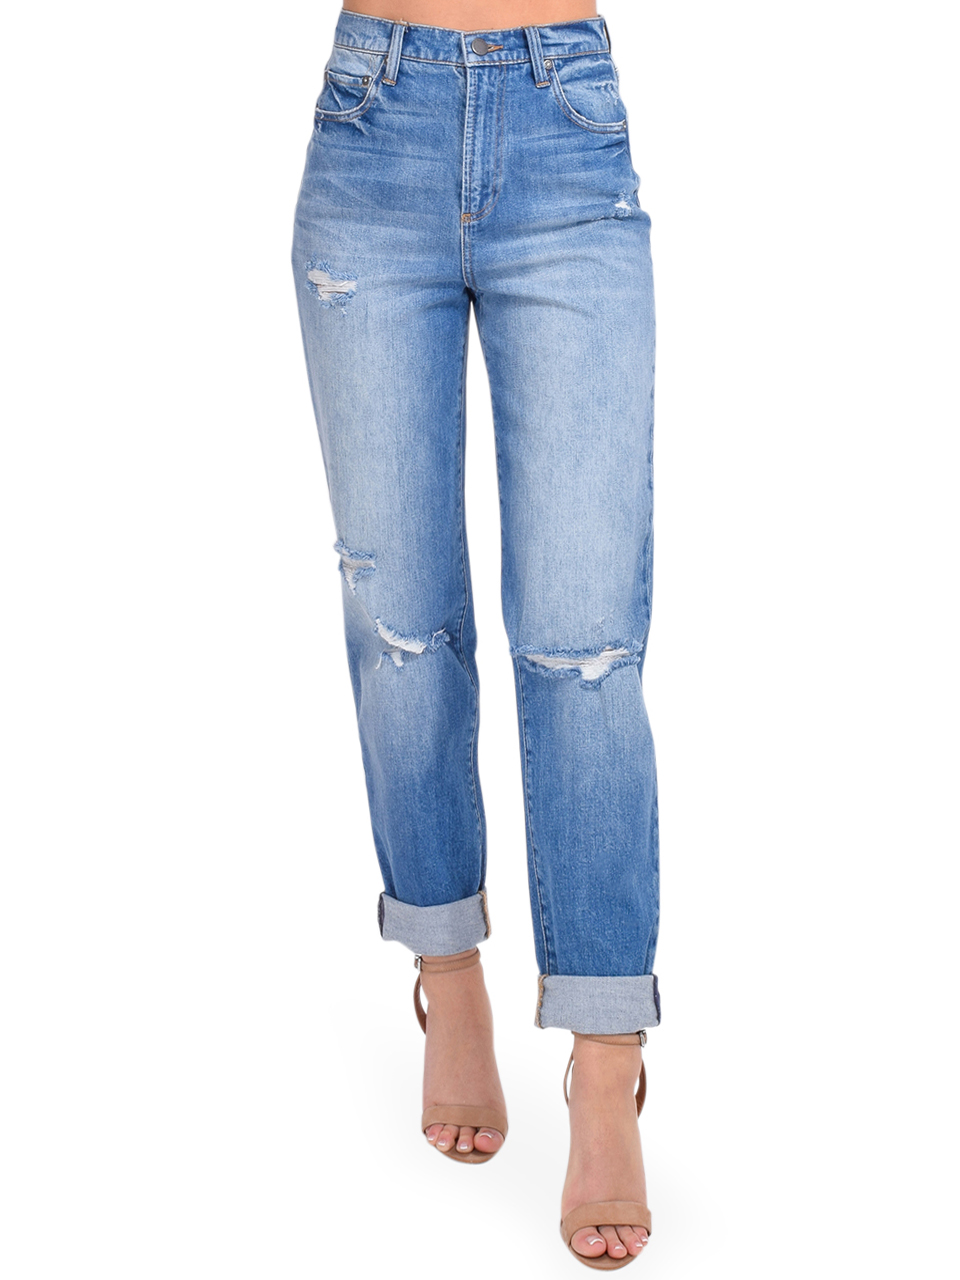 ALICE + OLIVIA Katerina High Waist Baggy Jean Front View  x1https://cdn11.bigcommerce.com/s-3wu6n/products/33807/images/112315/DSC_0163_Full__63981.1616456957.244.365.jpg?c=2x2